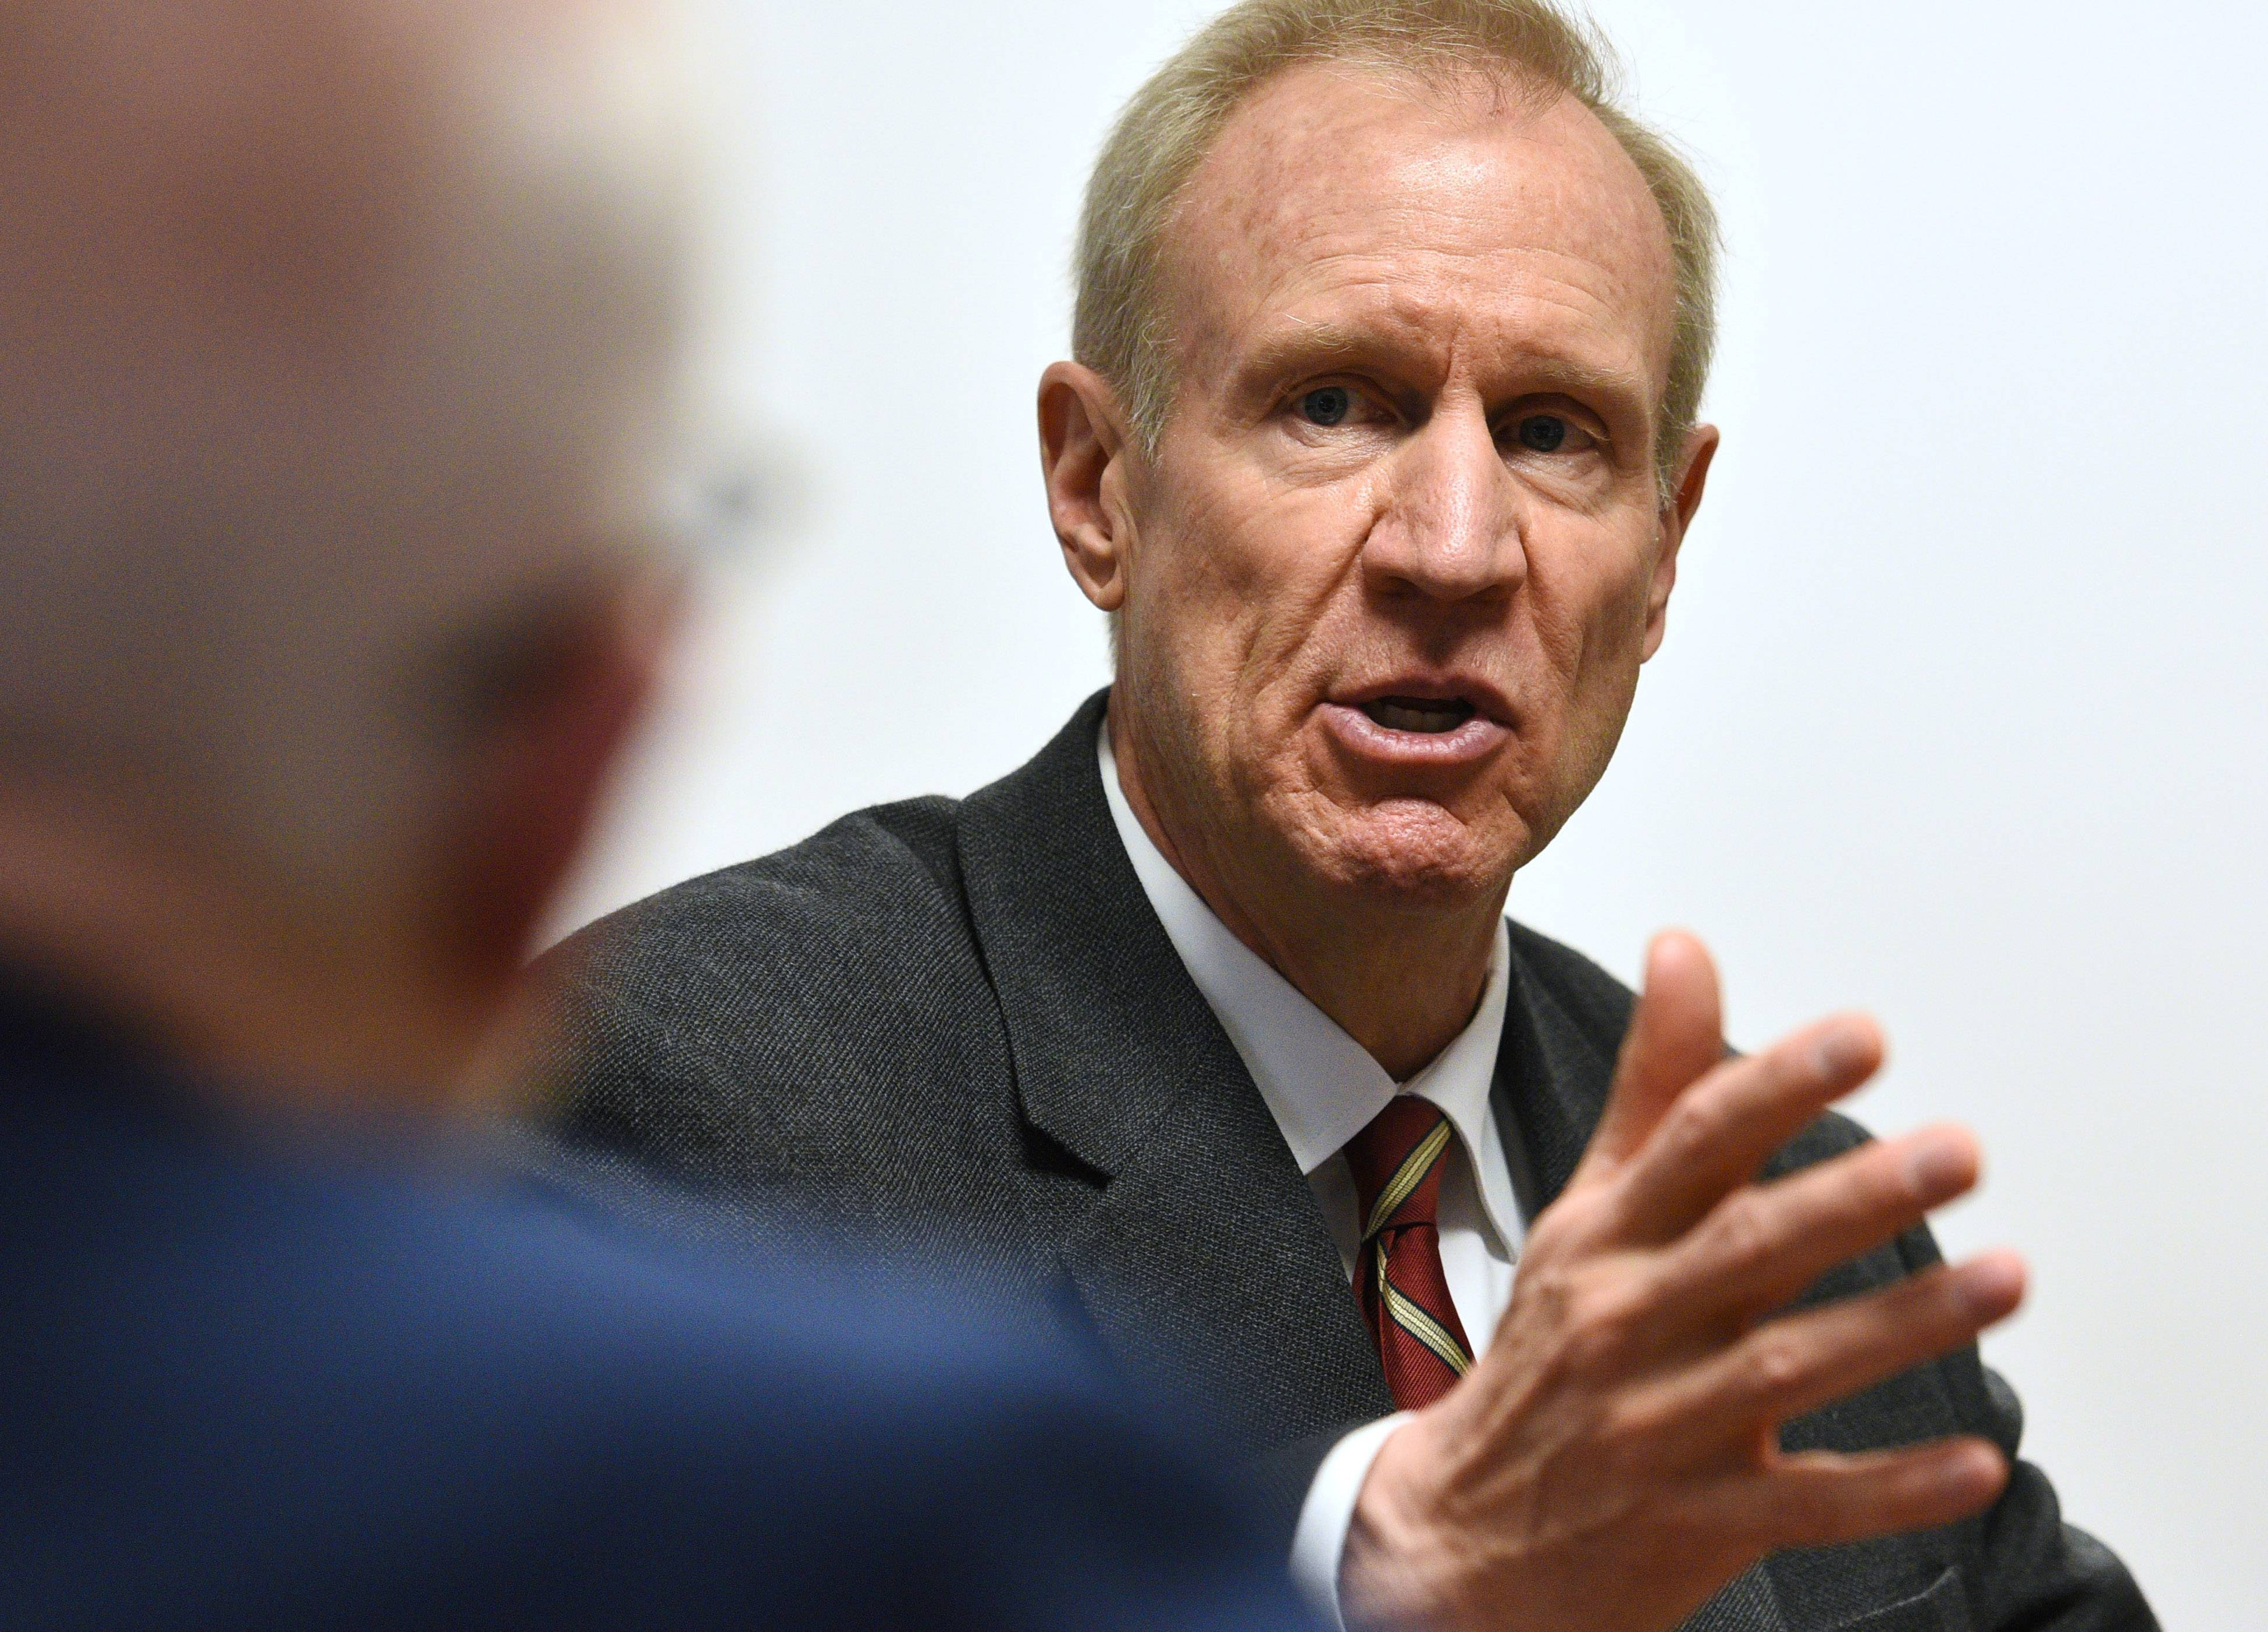 Rauner slams Ives ad as 'shameful,' criticizes legalizing marijuana for recreational use